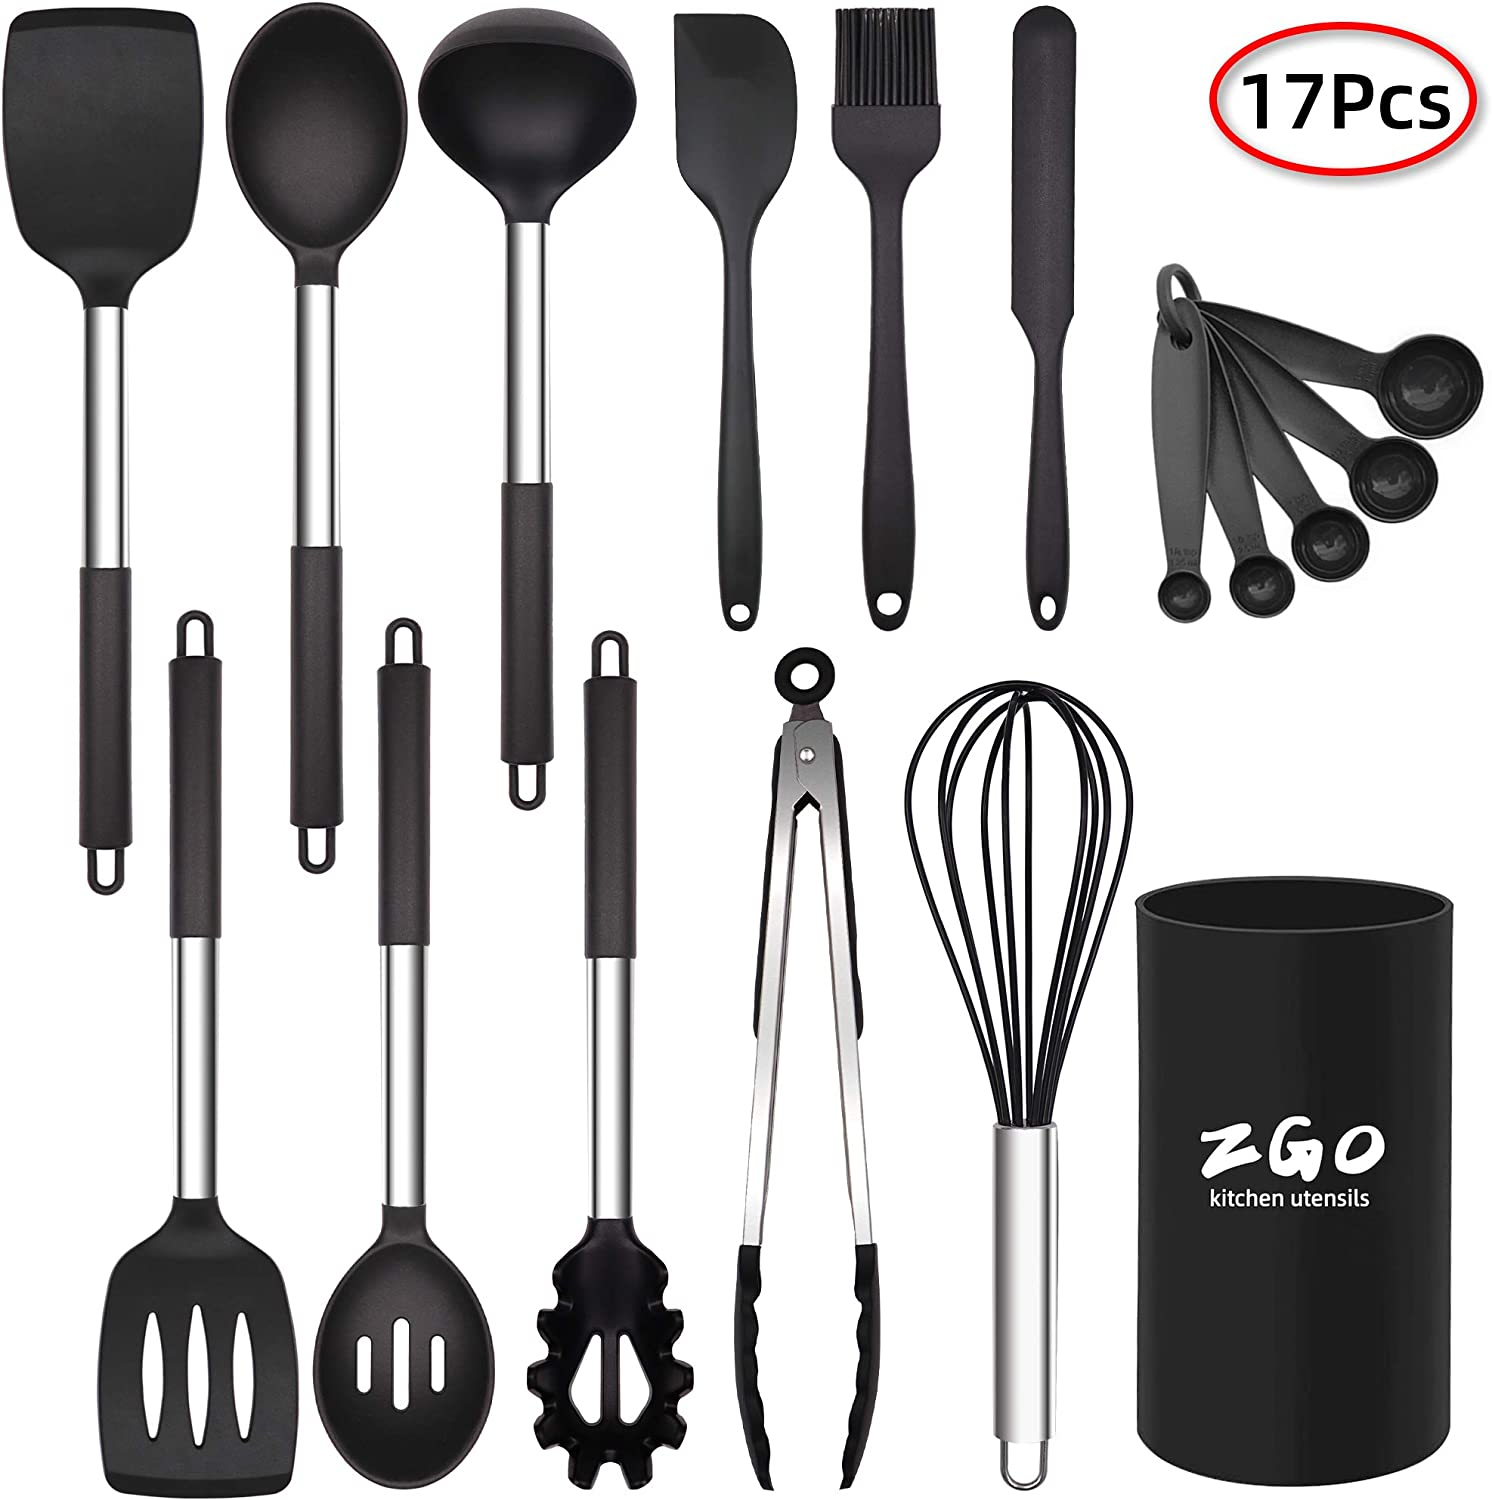 Kitchen Utensils Set,ZGO 17-Piece Silicone Cooking Utensils Set with Holder,Heat Resistant Utensils Set with Stainless Steel Handle for Nonstick Cookware,Kitchen Tools Gift,BAP Free(Black)